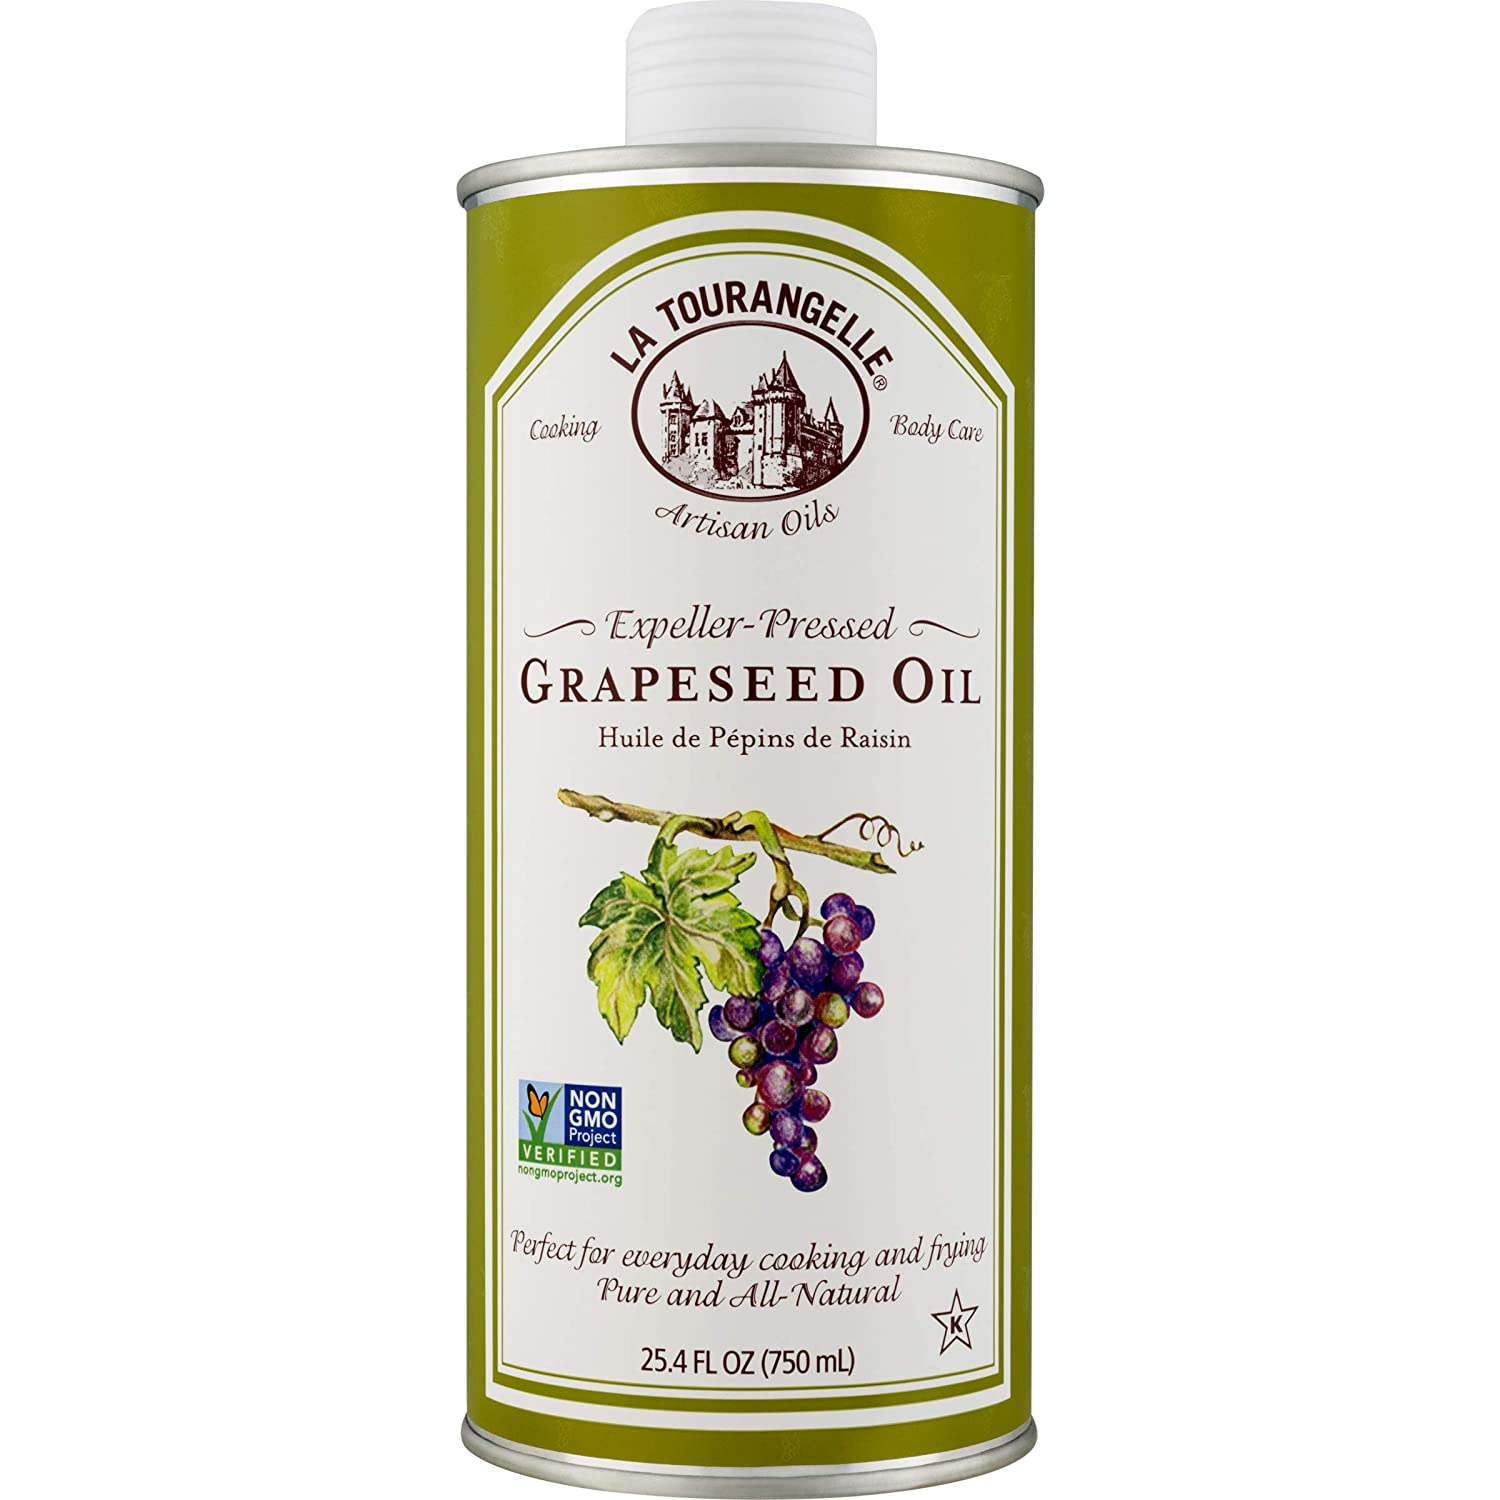 La Tourangelle Grapeseed Oil 25.4 Fl Oz, All-Natural, Artisanal, Great for Cooking, Sauteing, Marinating, and Dressing